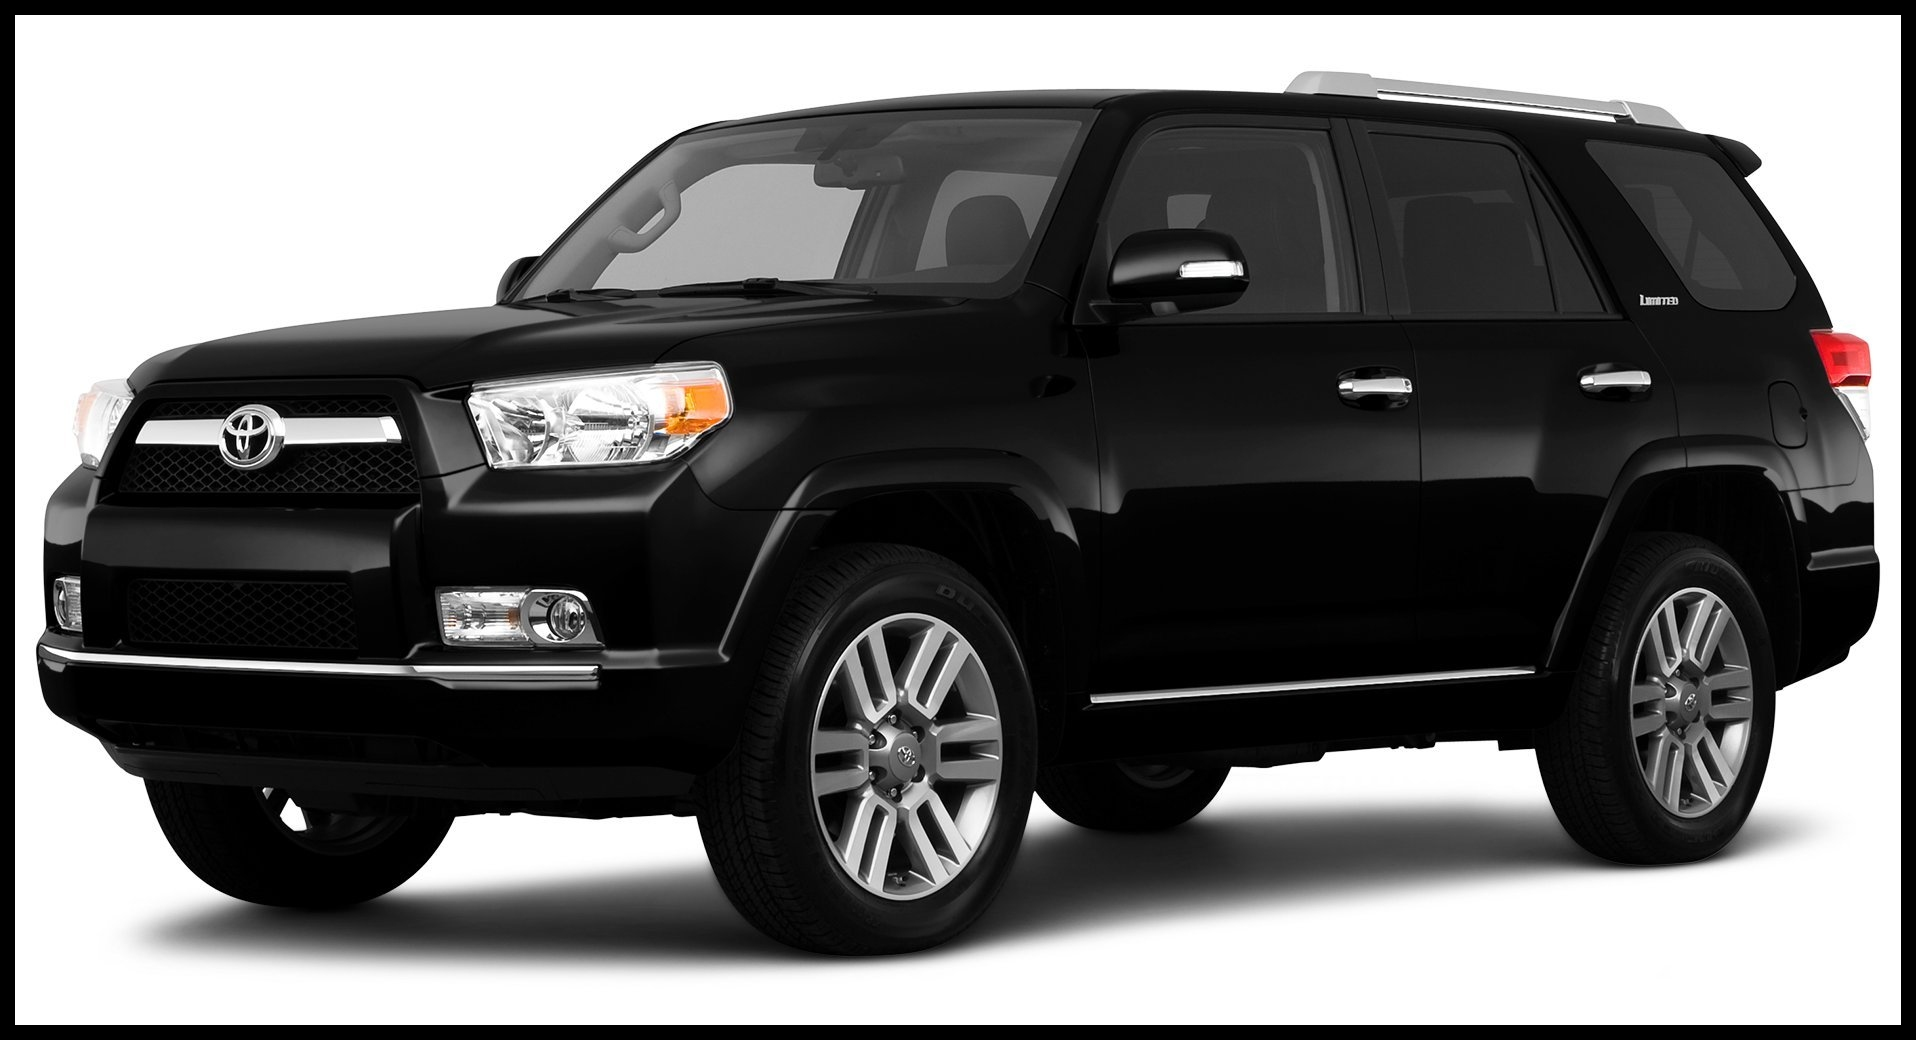 2010 Toyota 4Runner Limited 4 Wheel Drive 4 Door V6 GS